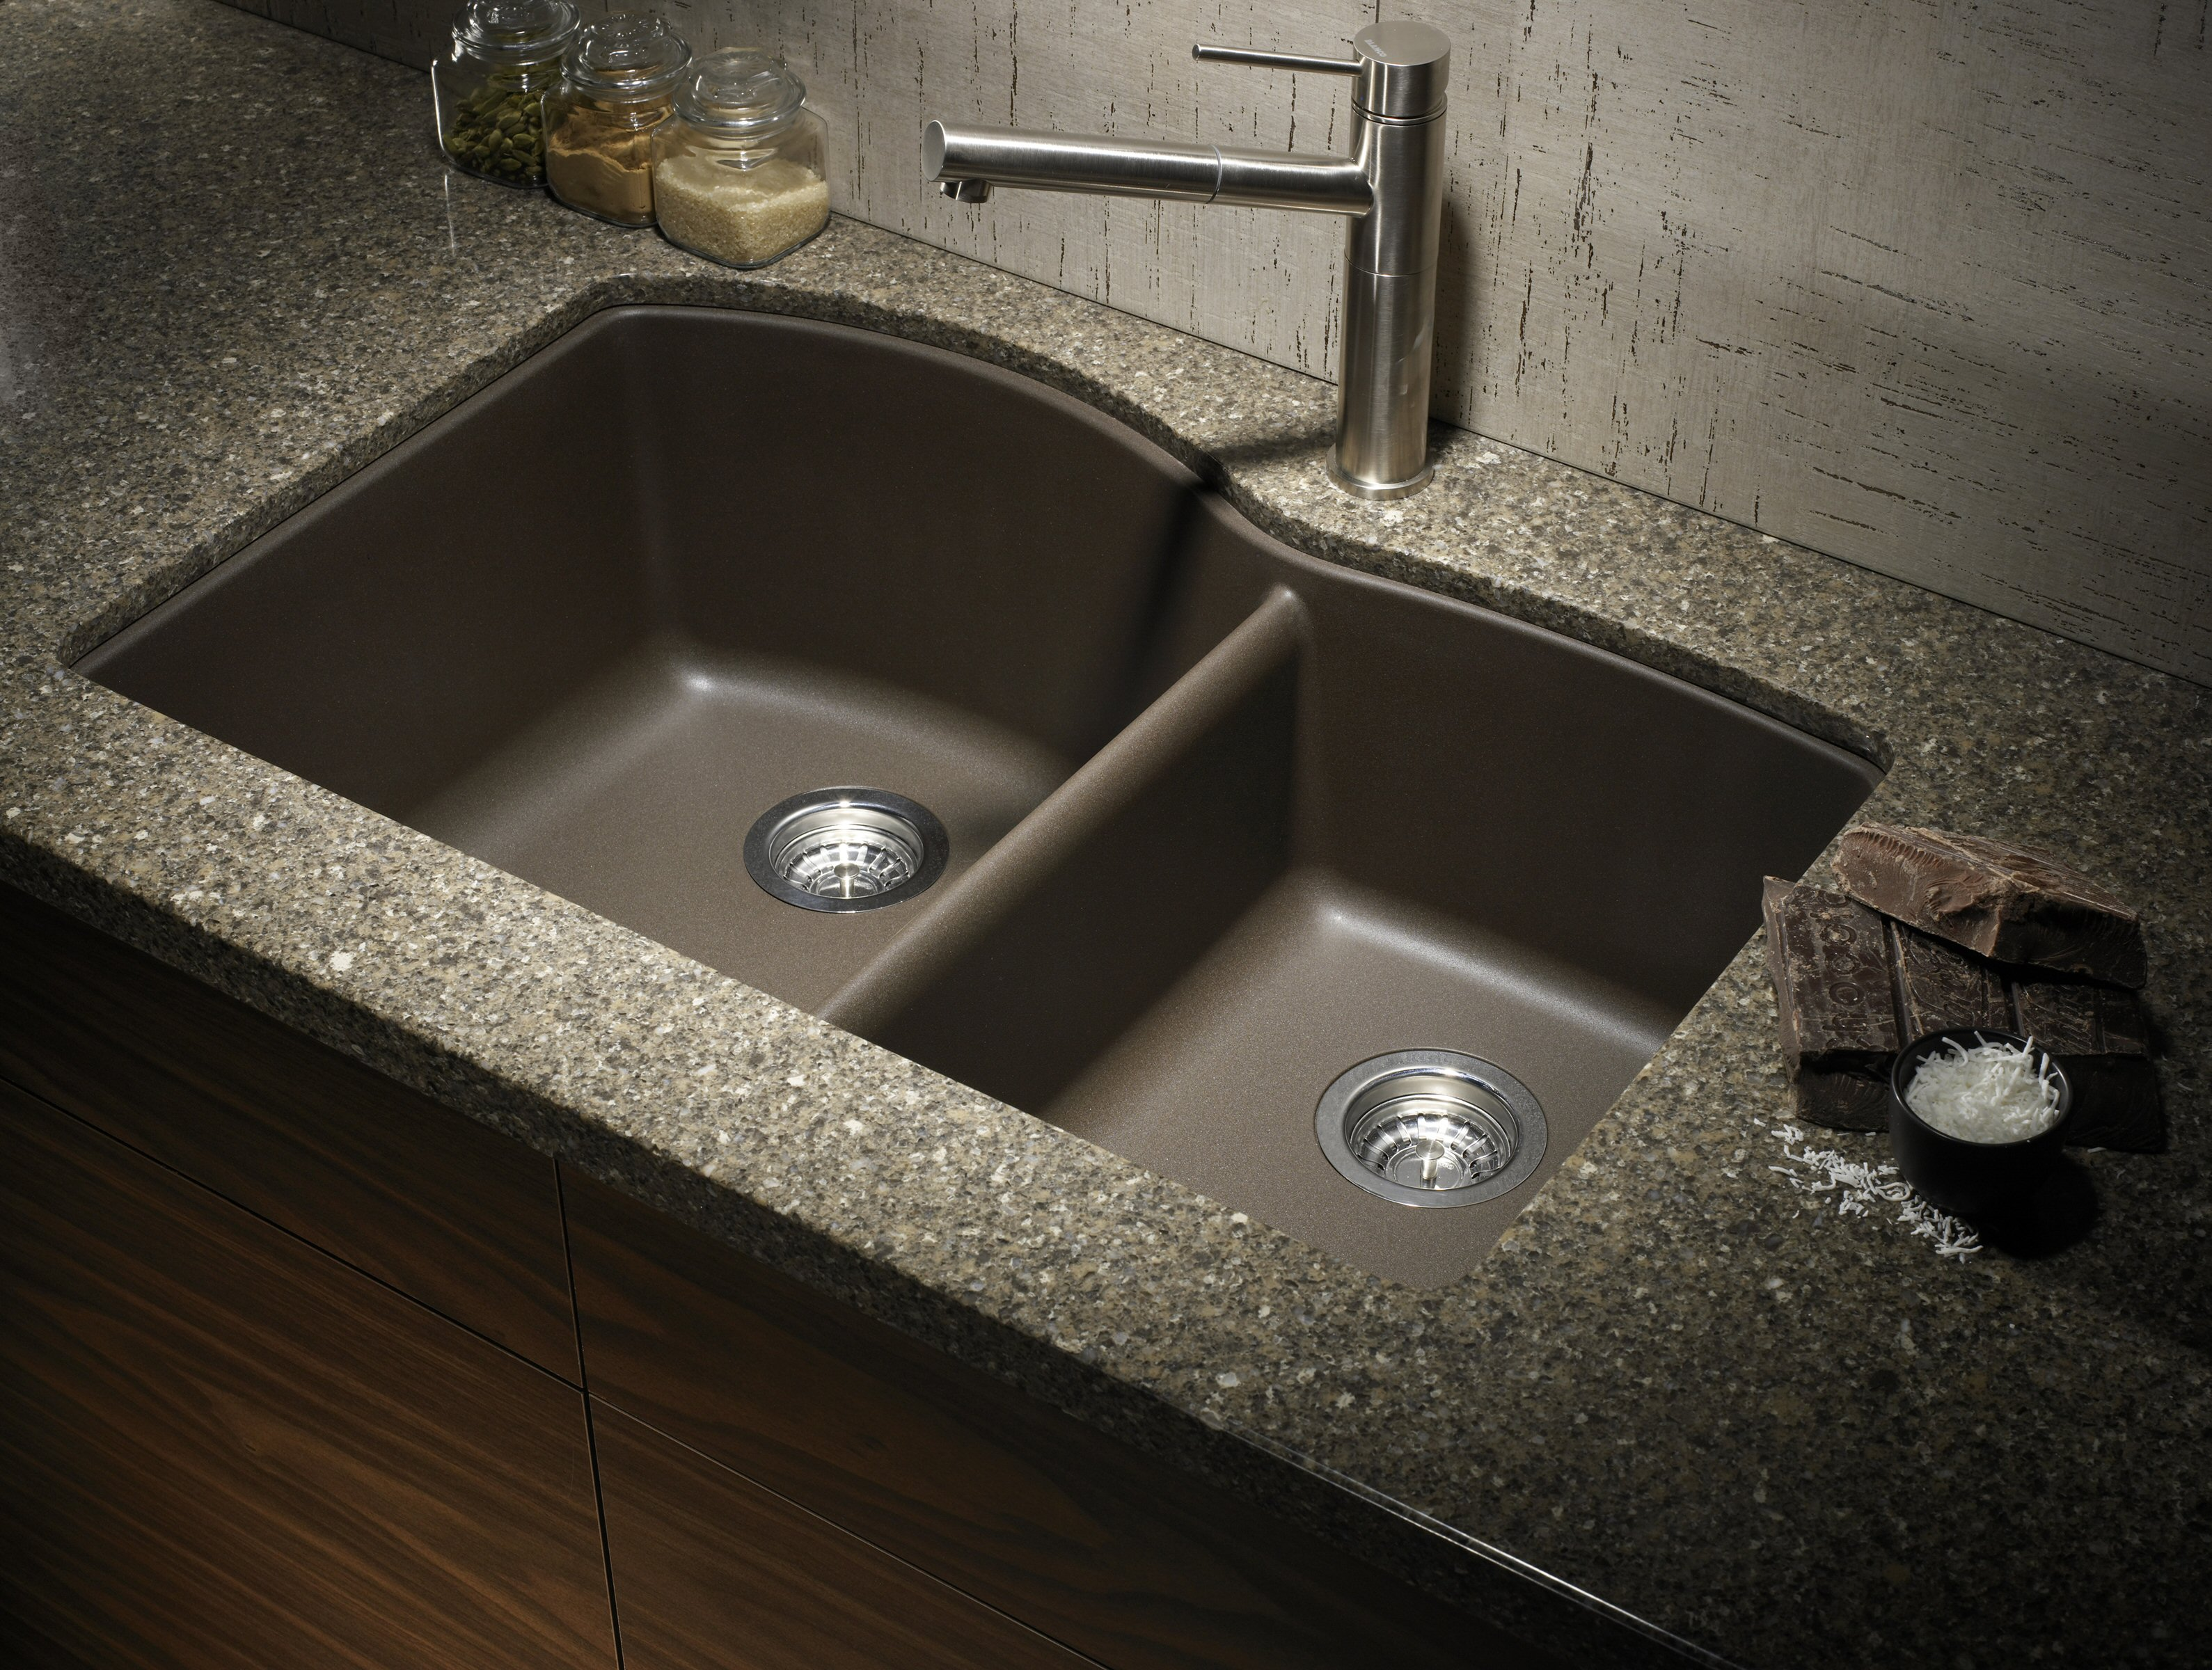 sink for kitchen island large done right construction buying tips in ottawa purchasing a new